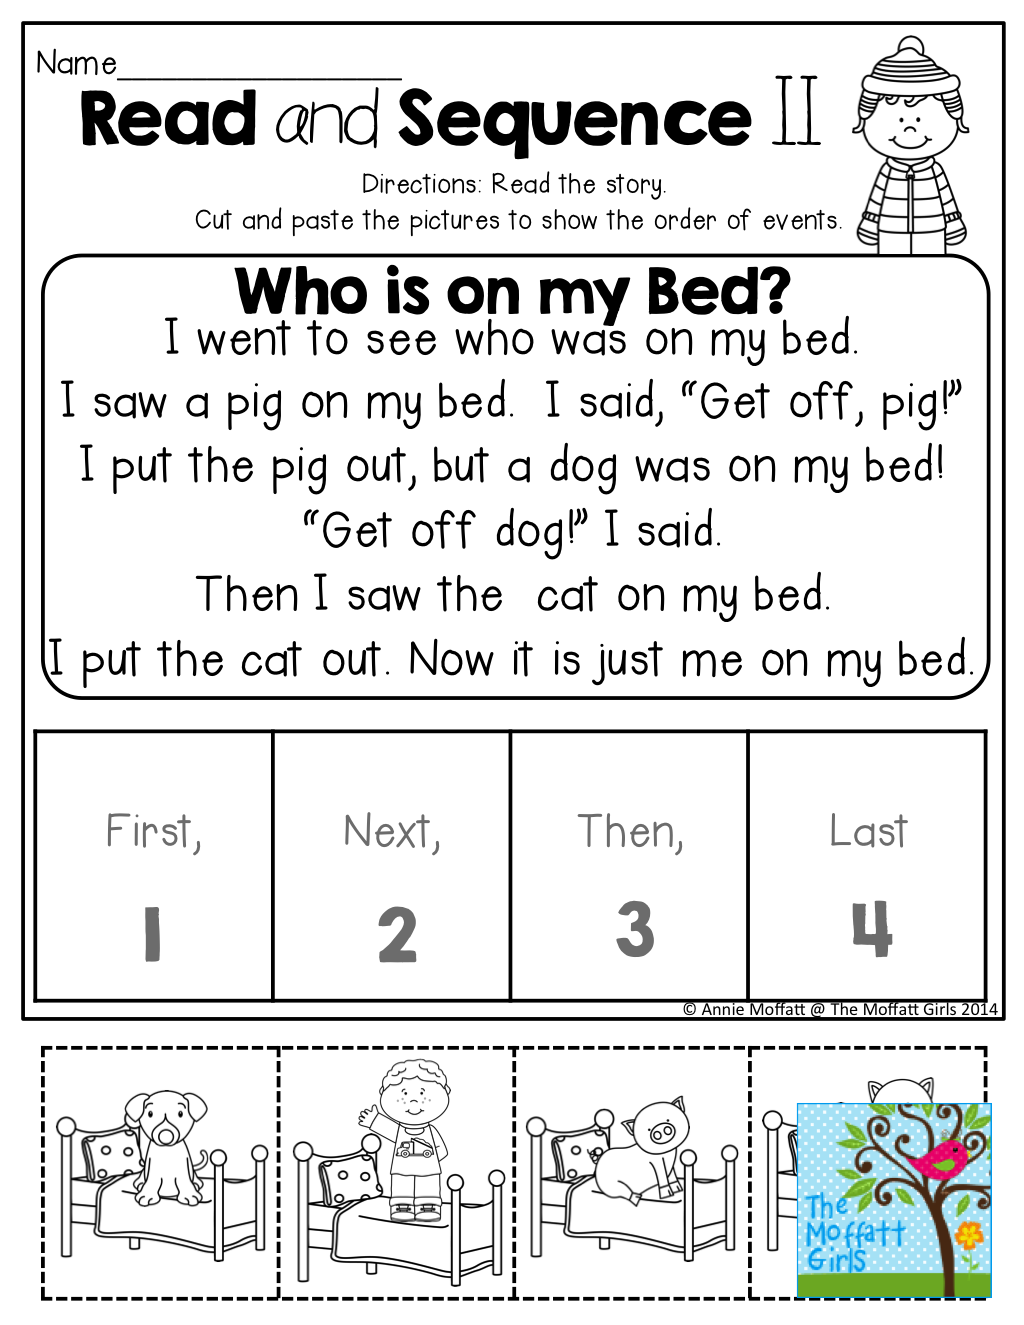 Read And Sequence The Simple Story! Cut And Past The Pictures In